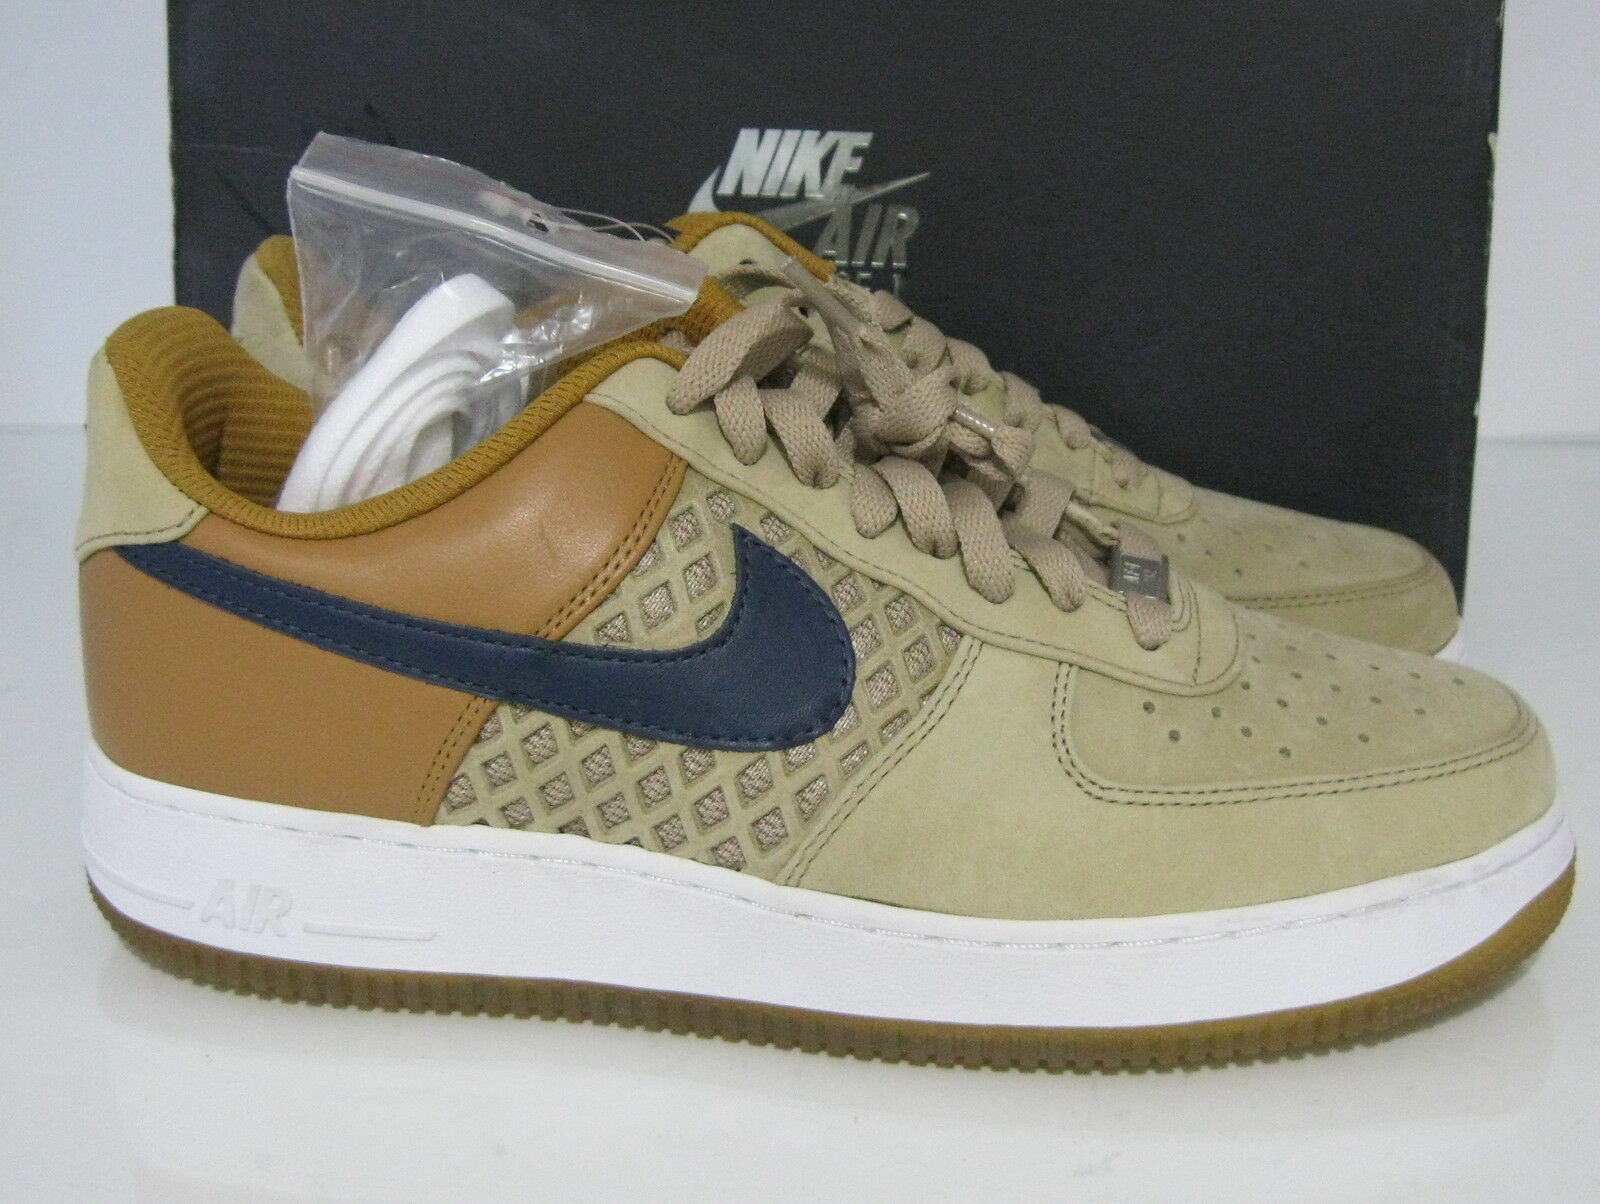 New Nike Air Force 1 318775 241 Sneakers shoes Size 8